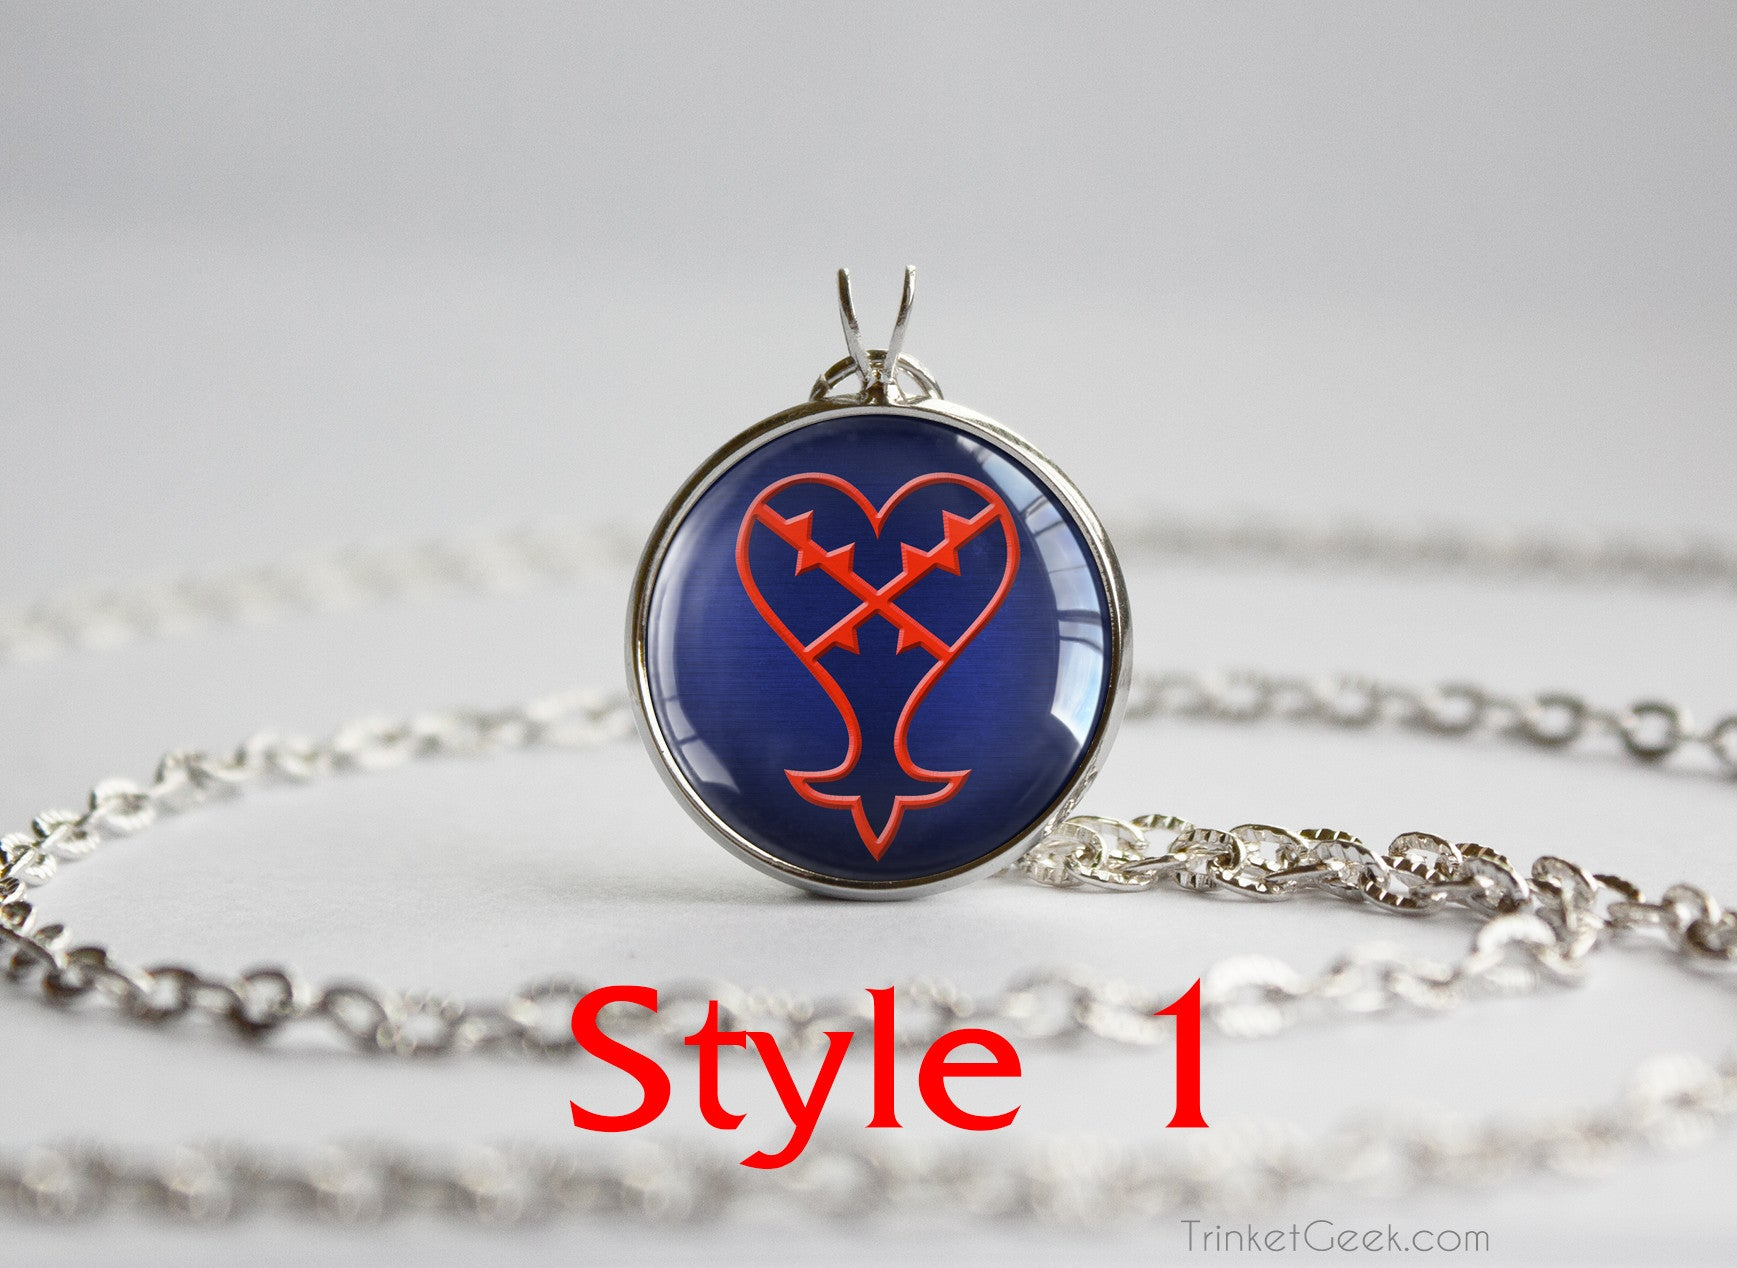 Kingdom Hearts Kh Heartless Symbol Pendants Trinket Geek